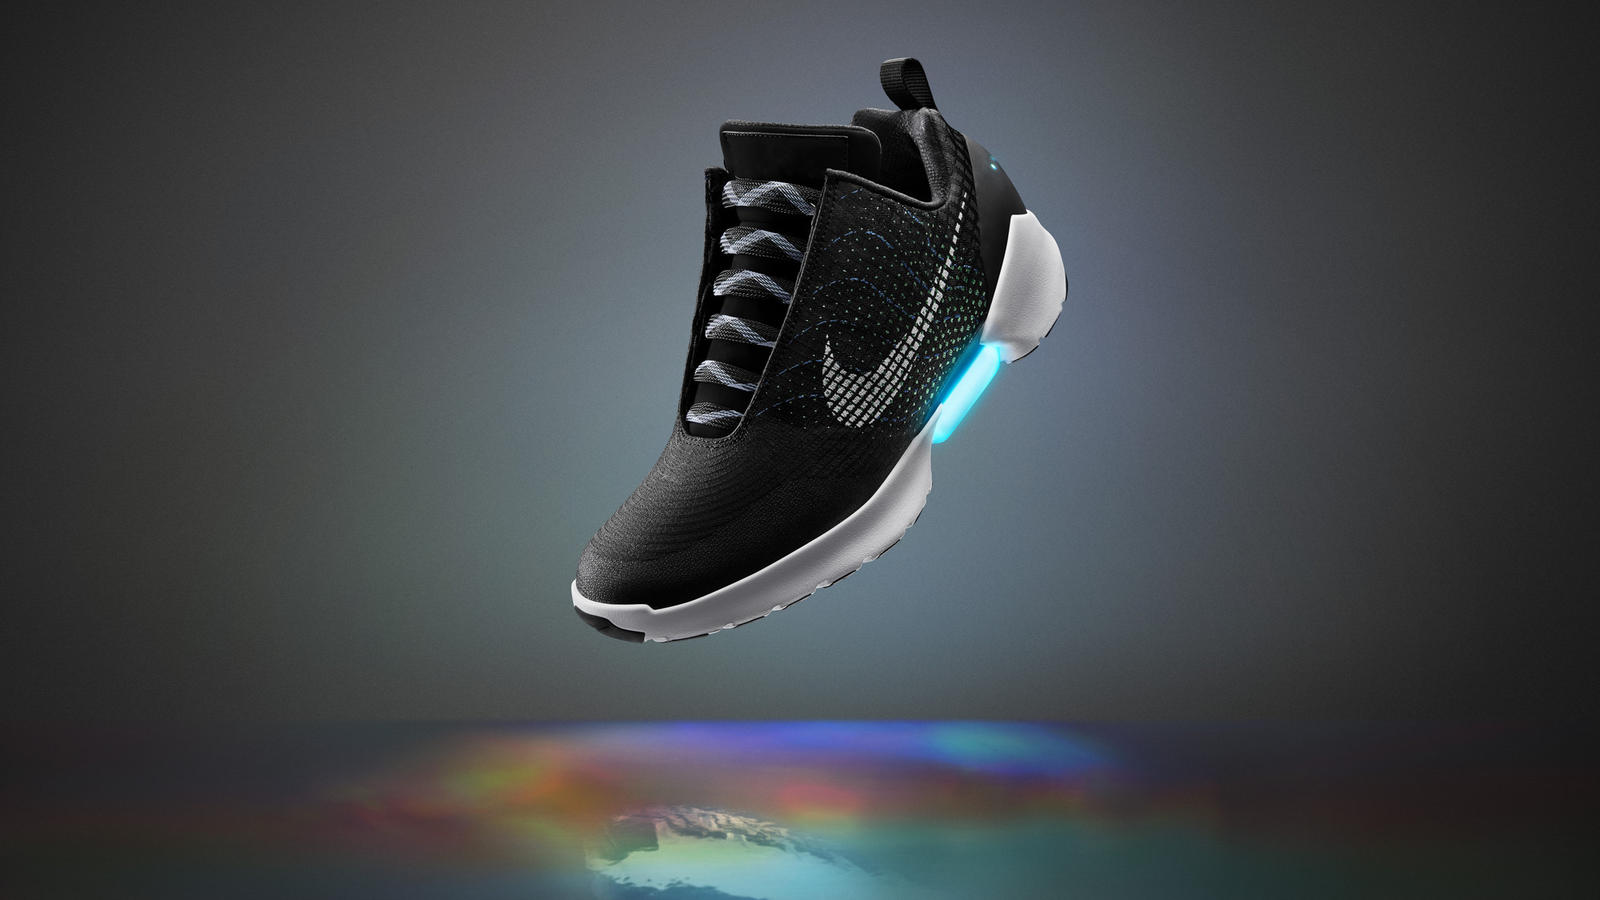 Nike HyperAdapt 1.0 Manifests the Unimaginable - Nike News f01634be70